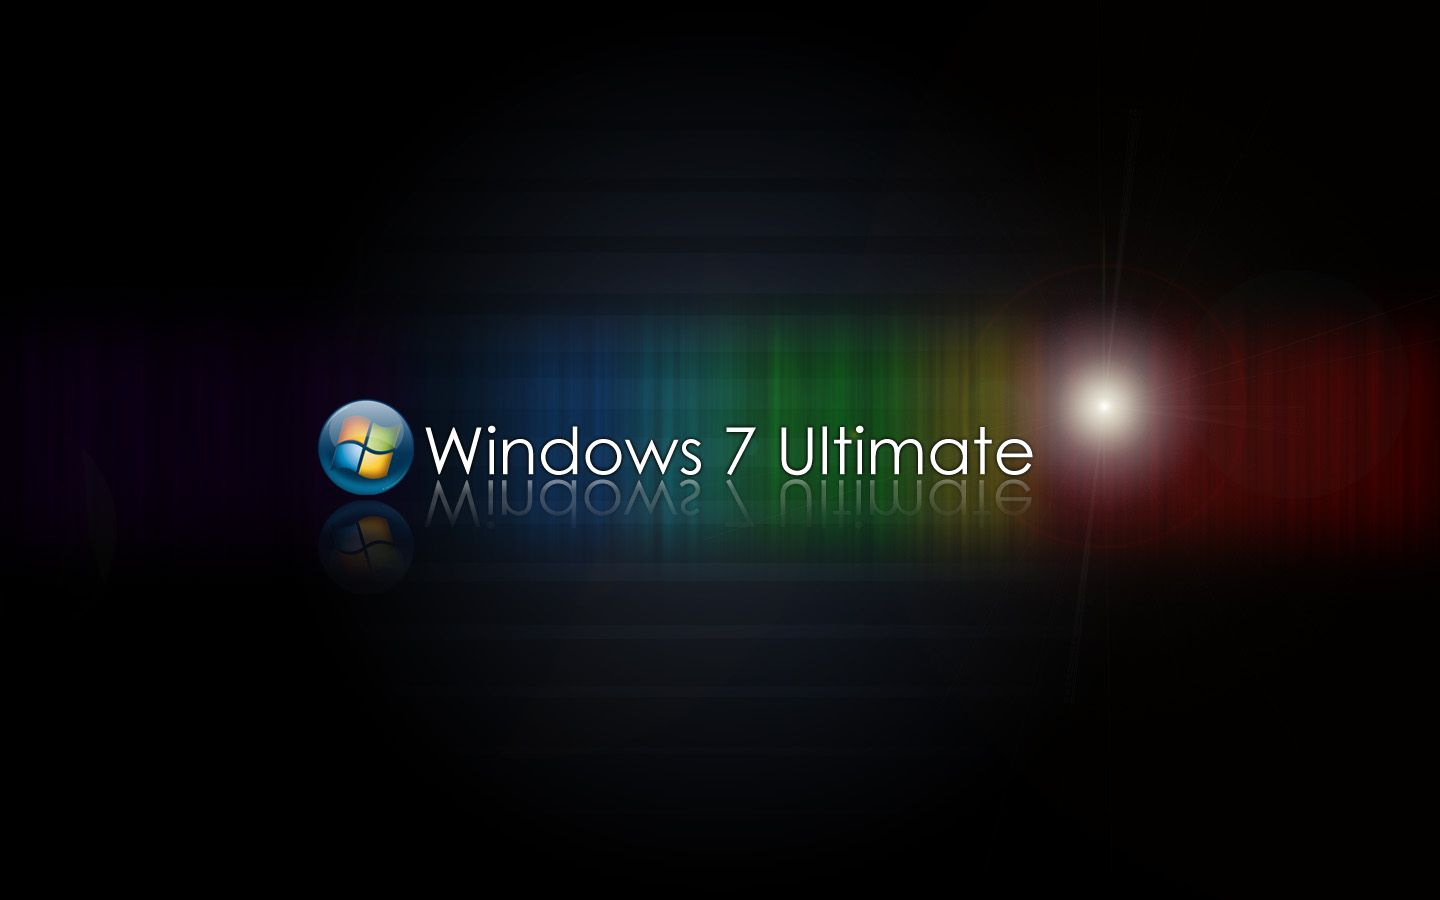 Moving Windows 7 Ultimate Wallpaper